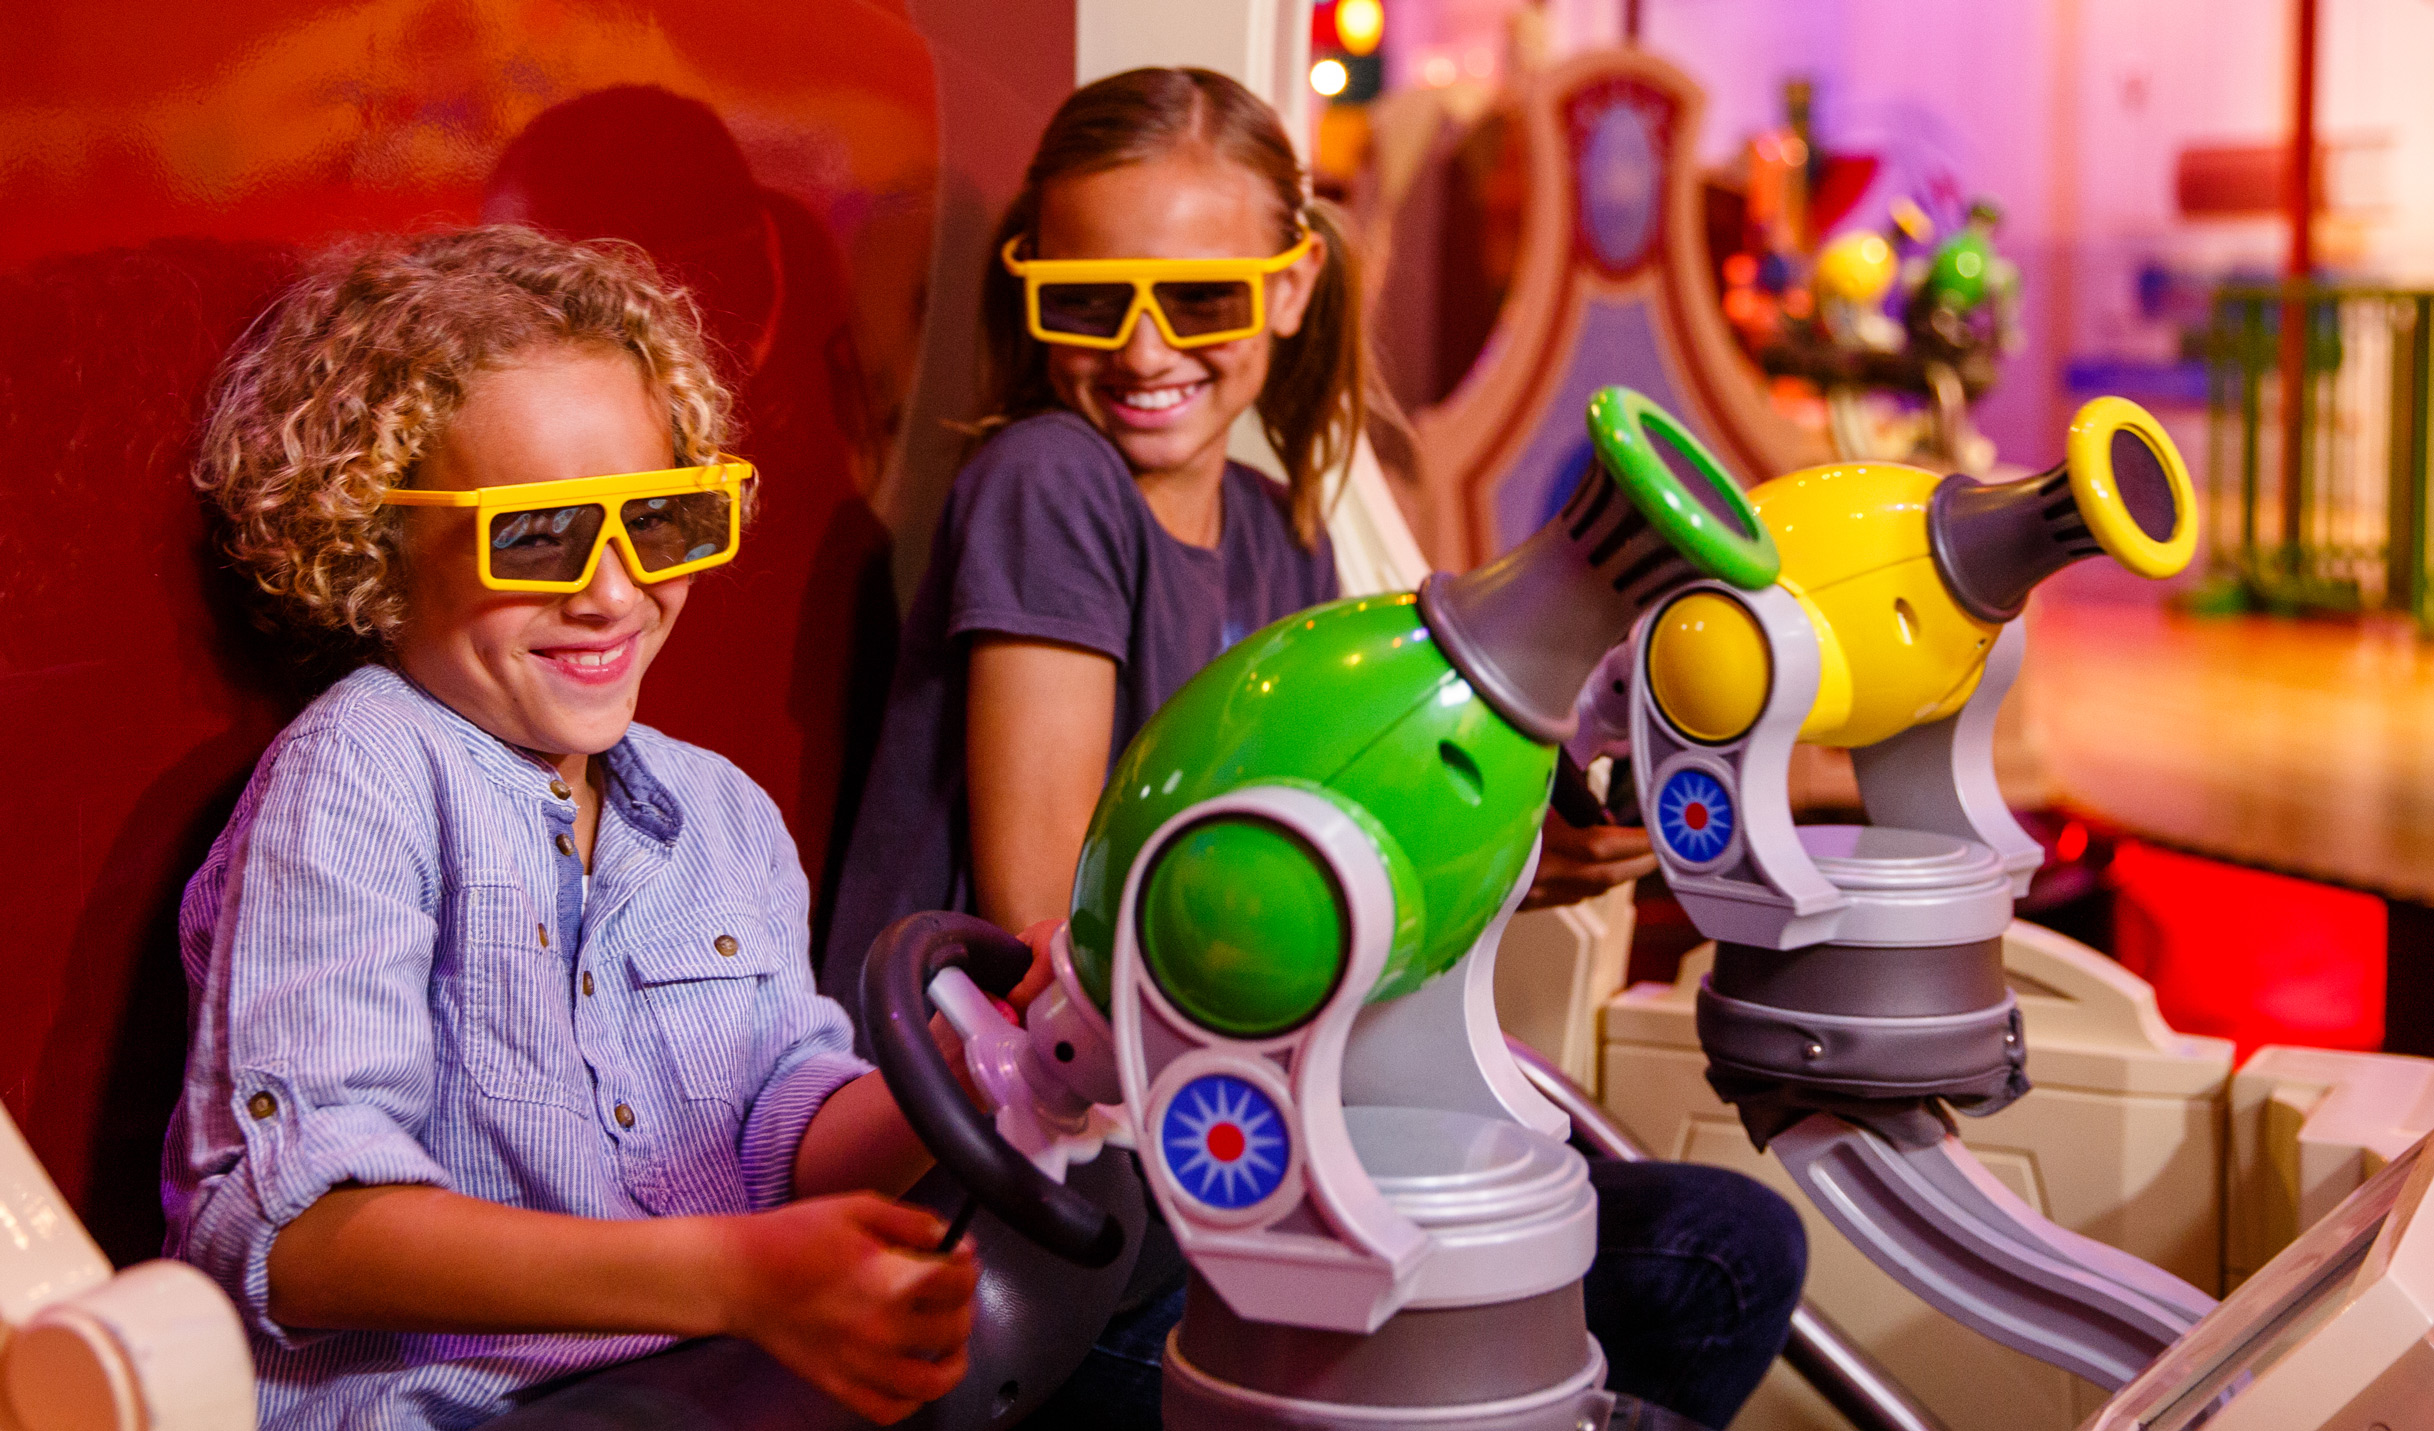 Young Guests wearing 3D glasses smile while they shoot at targets throughout Toy Story Midway Mania!